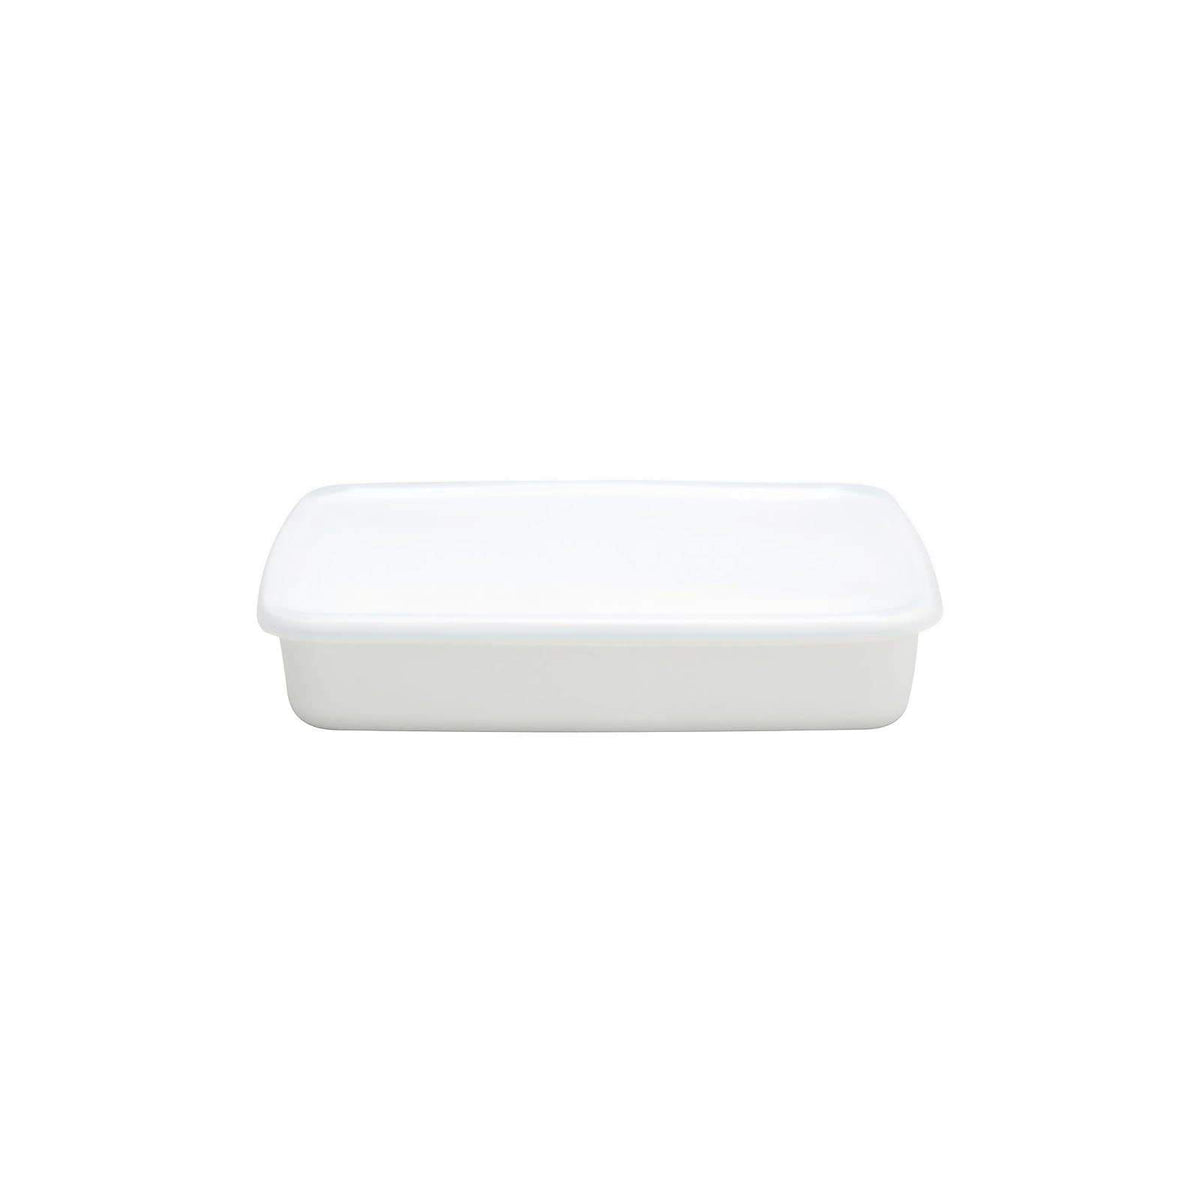 Noda Horo White Series Enamel Rectangle Shallow Food Containers with Lid (3 Sizes) Large Food Containers